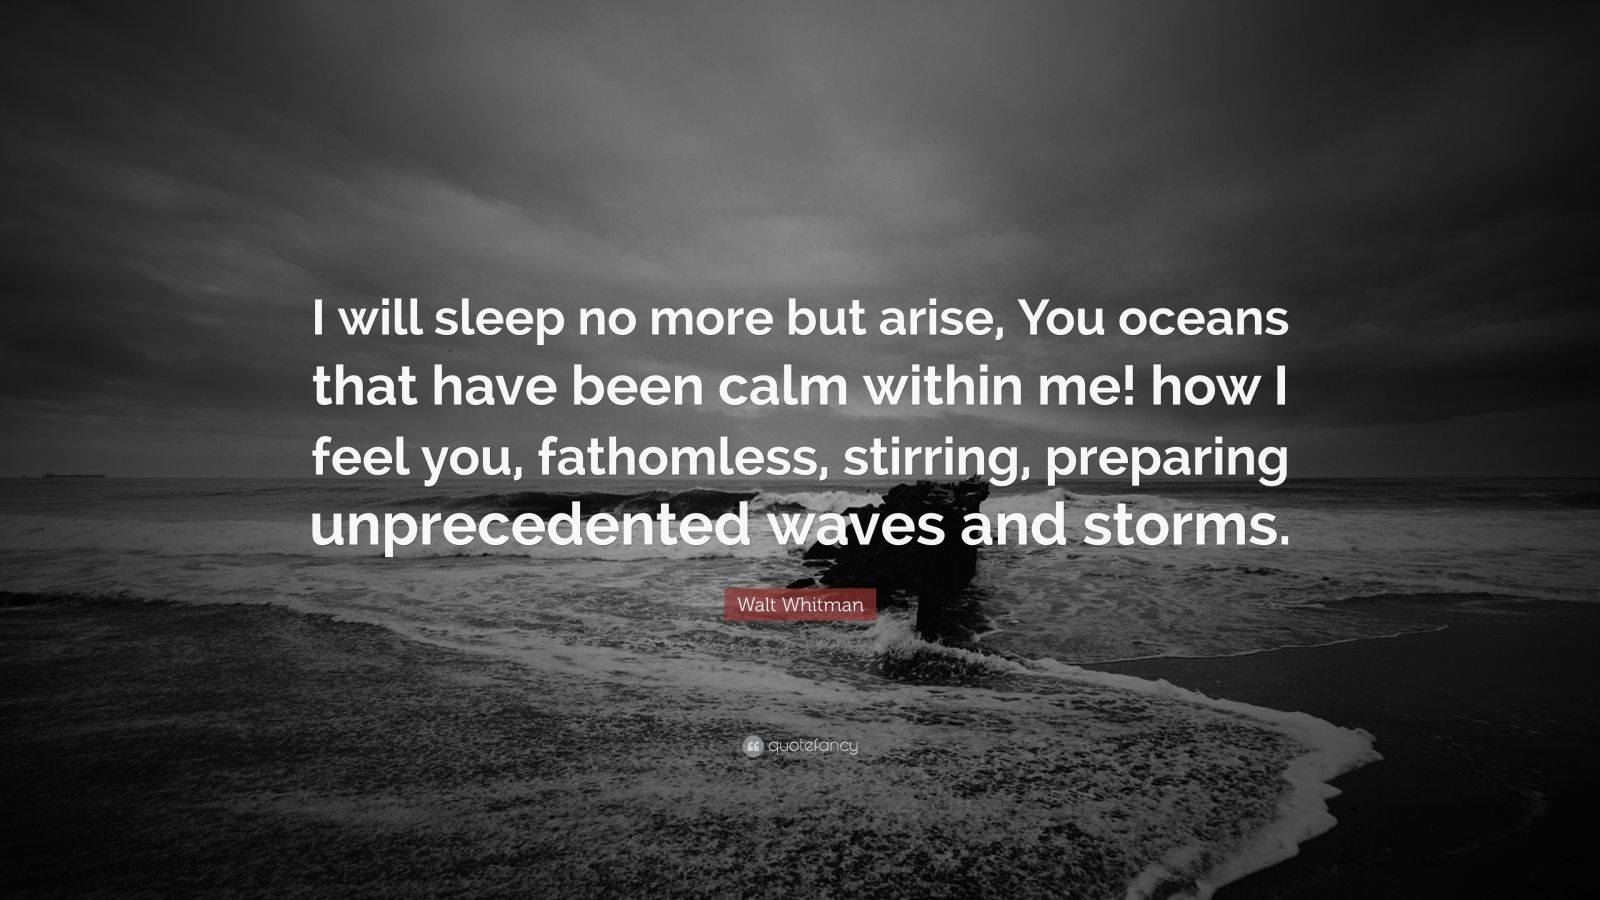 """Walt Whitman Quote: """"I will sleep no more but arise, You oceans that have been calm within me! how I feel you, fathomless, stirring, preparing unprecedented waves and storms."""""""